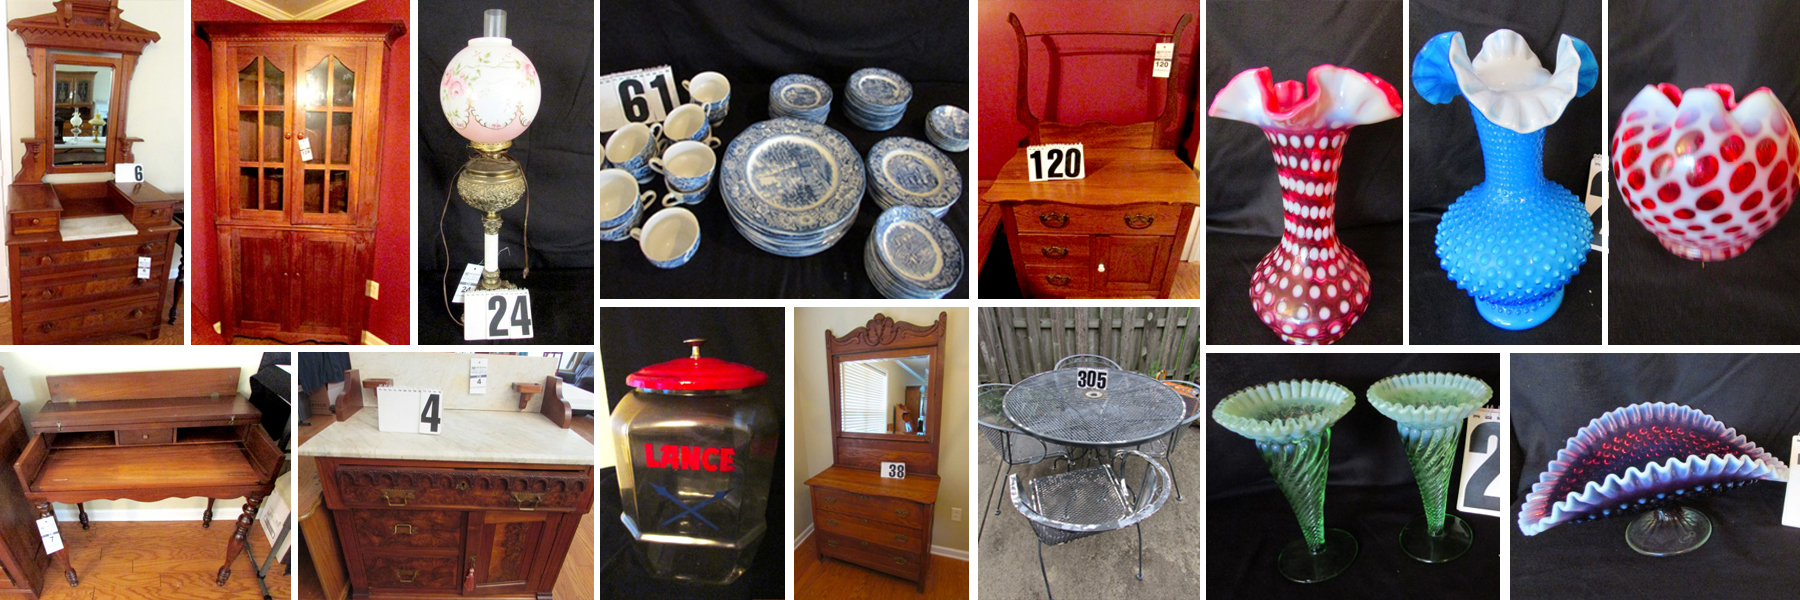 Estate Auction Antique Furniture Fenton Glassware Collectibles Comas Montgomery Realty